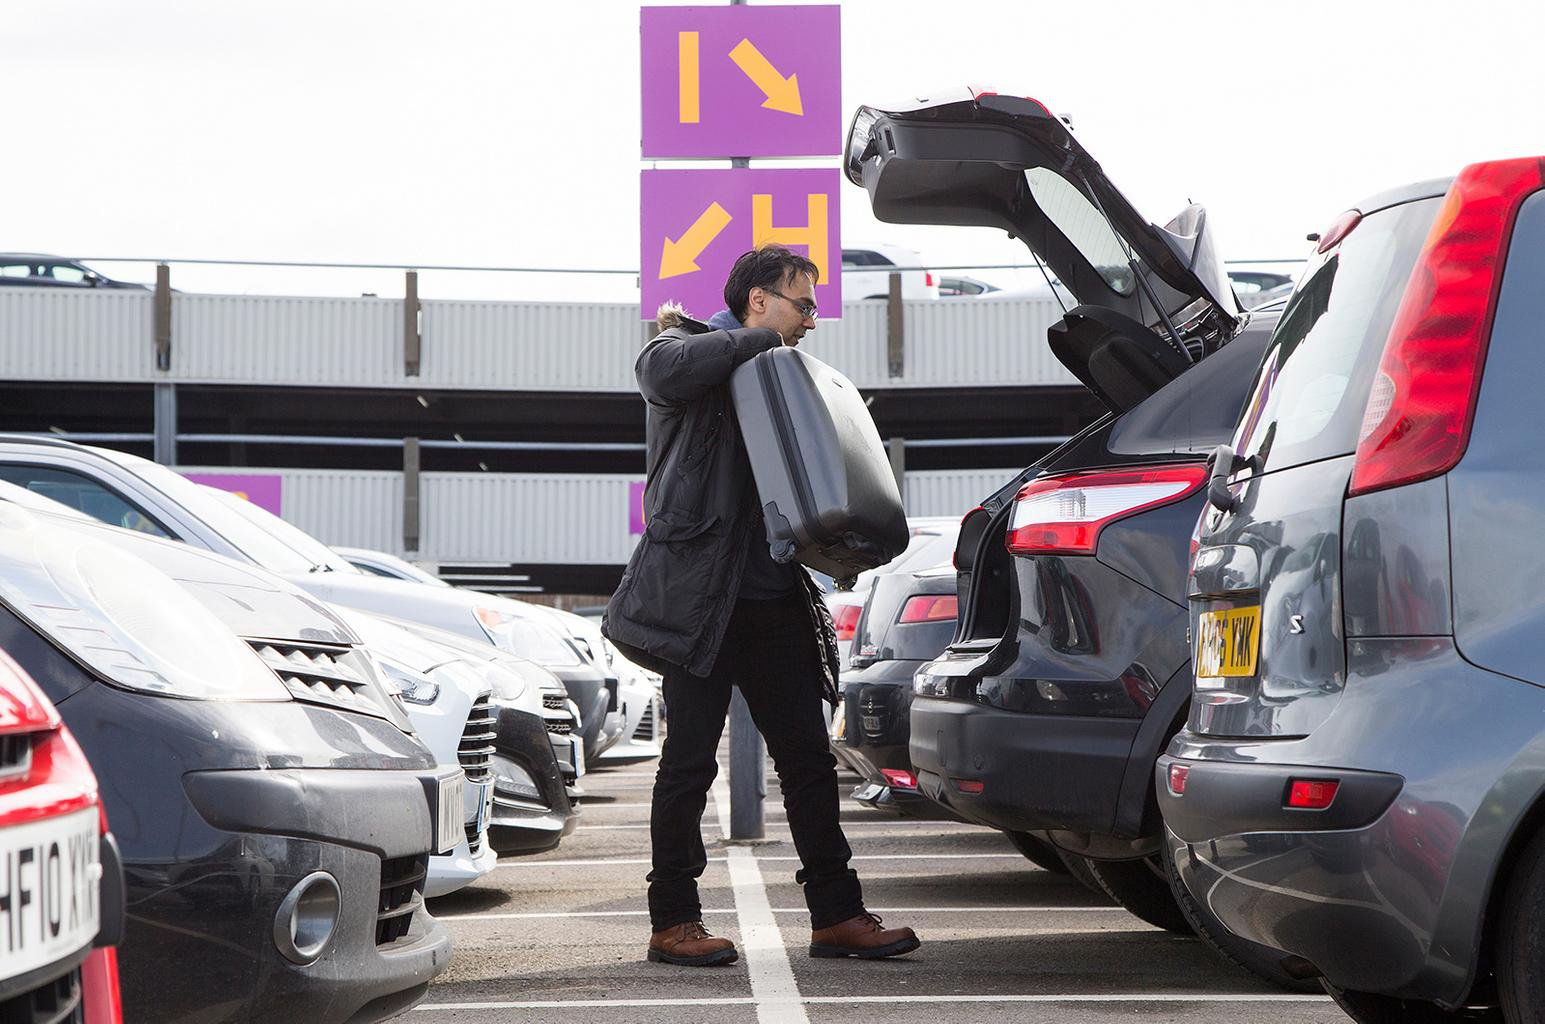 Top 10 tips to save money on airport parking